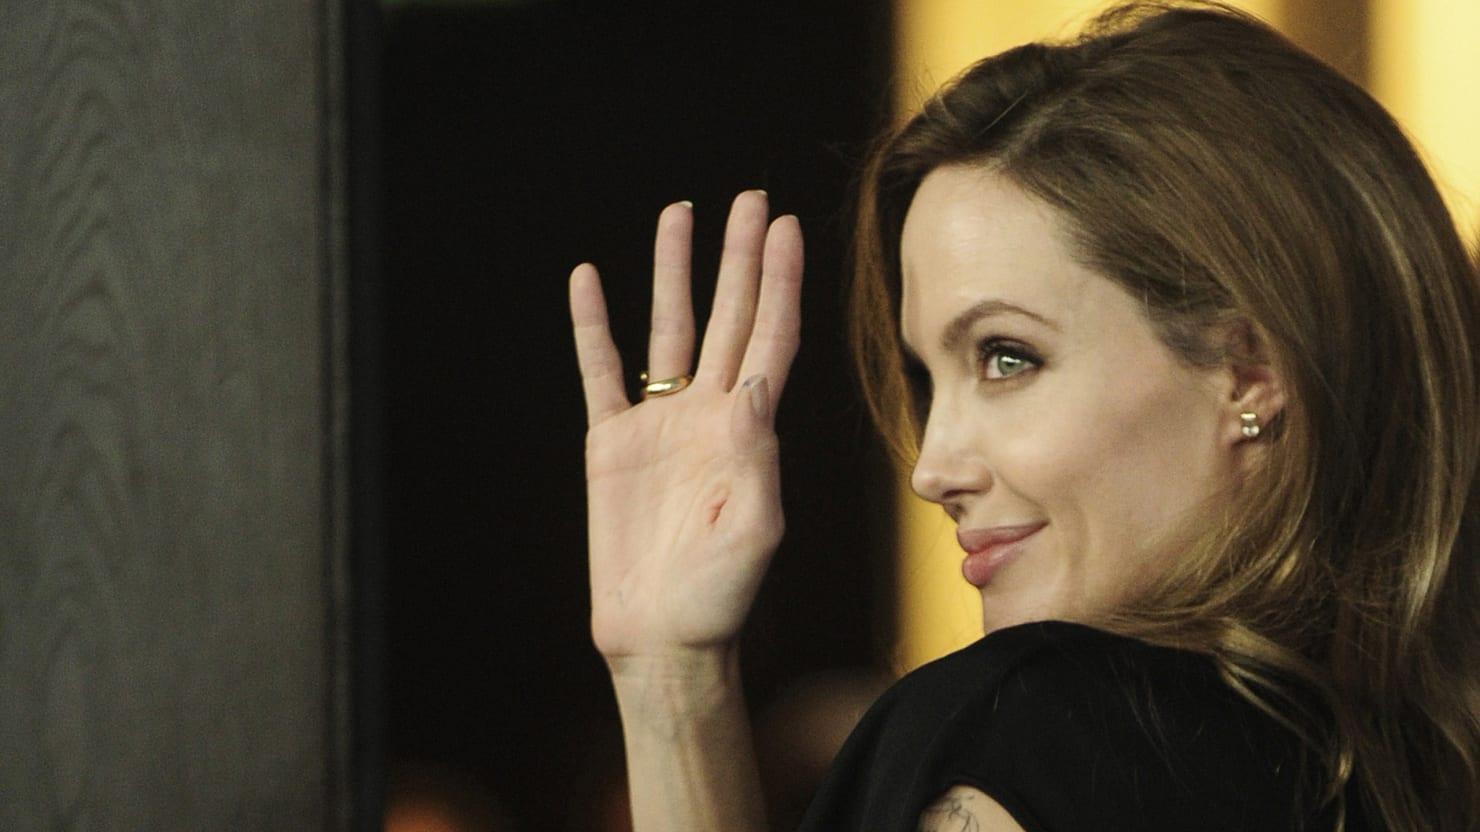 Post-Mastectomy Pain Control: Advice From Angelina Jolie's Breast Surgeon